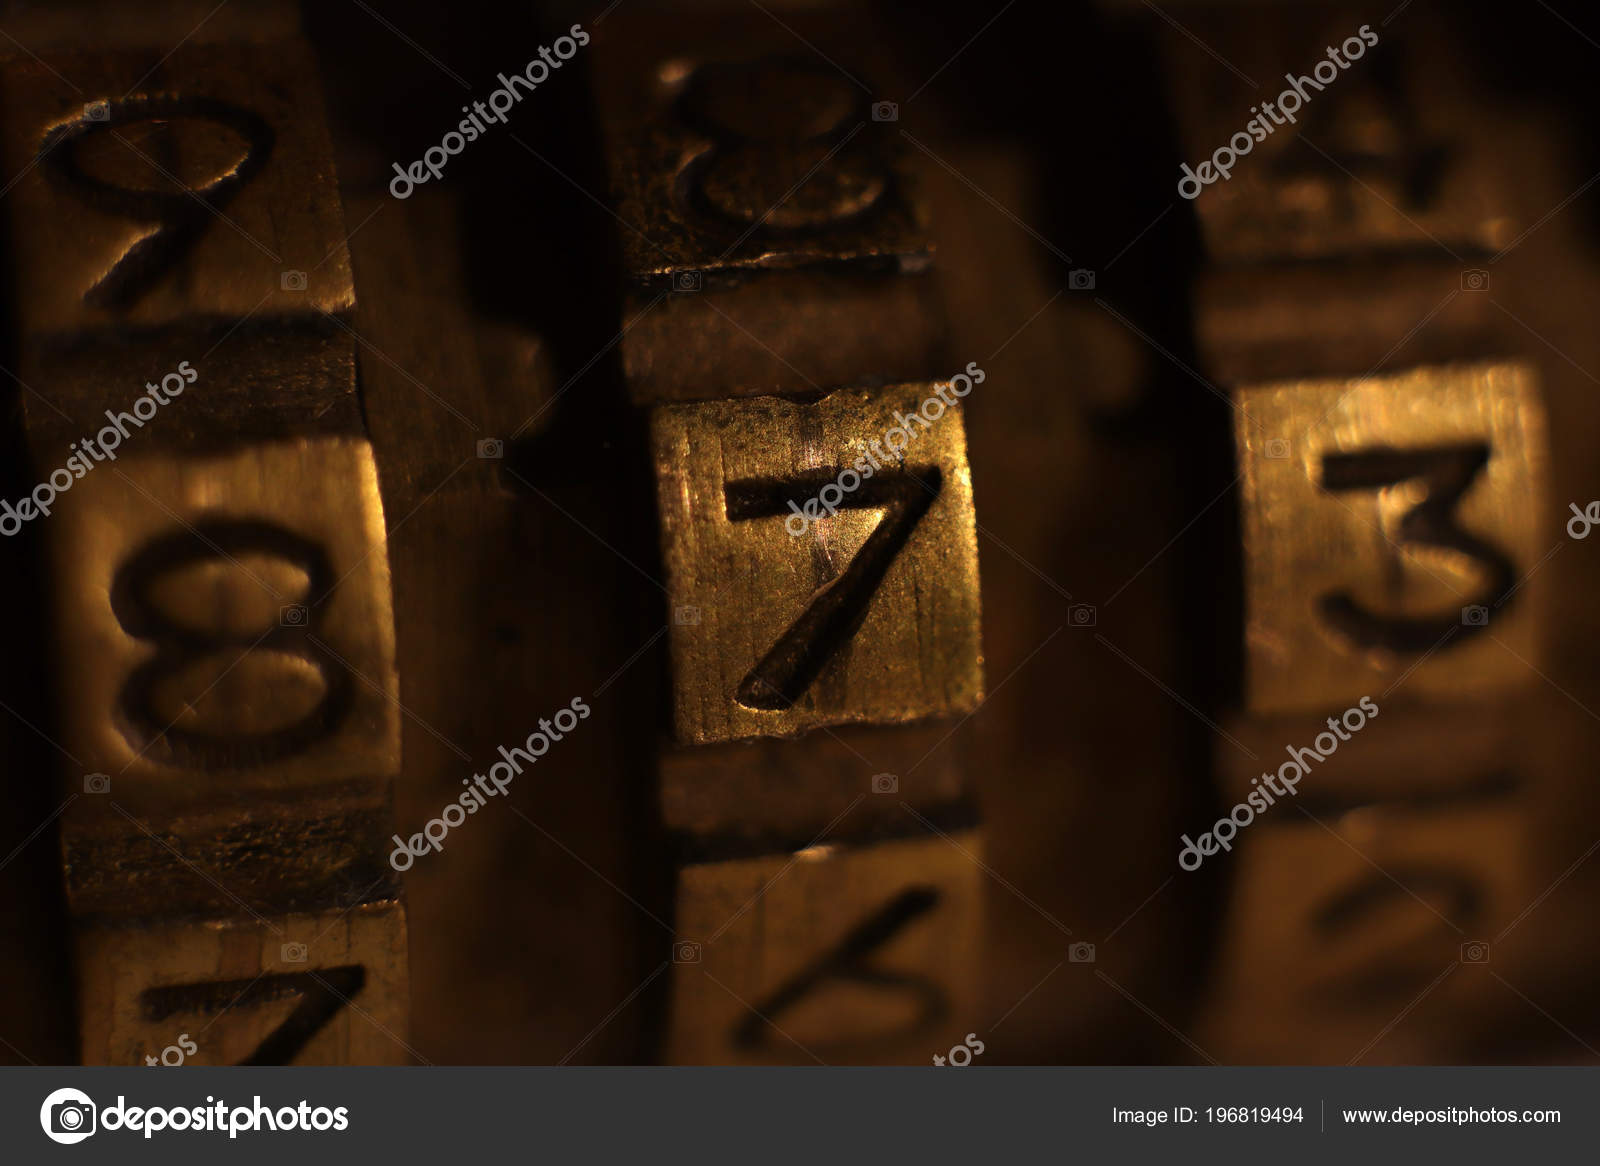 Retro Bronze Lock Number Combination Shiny Vintage Codes